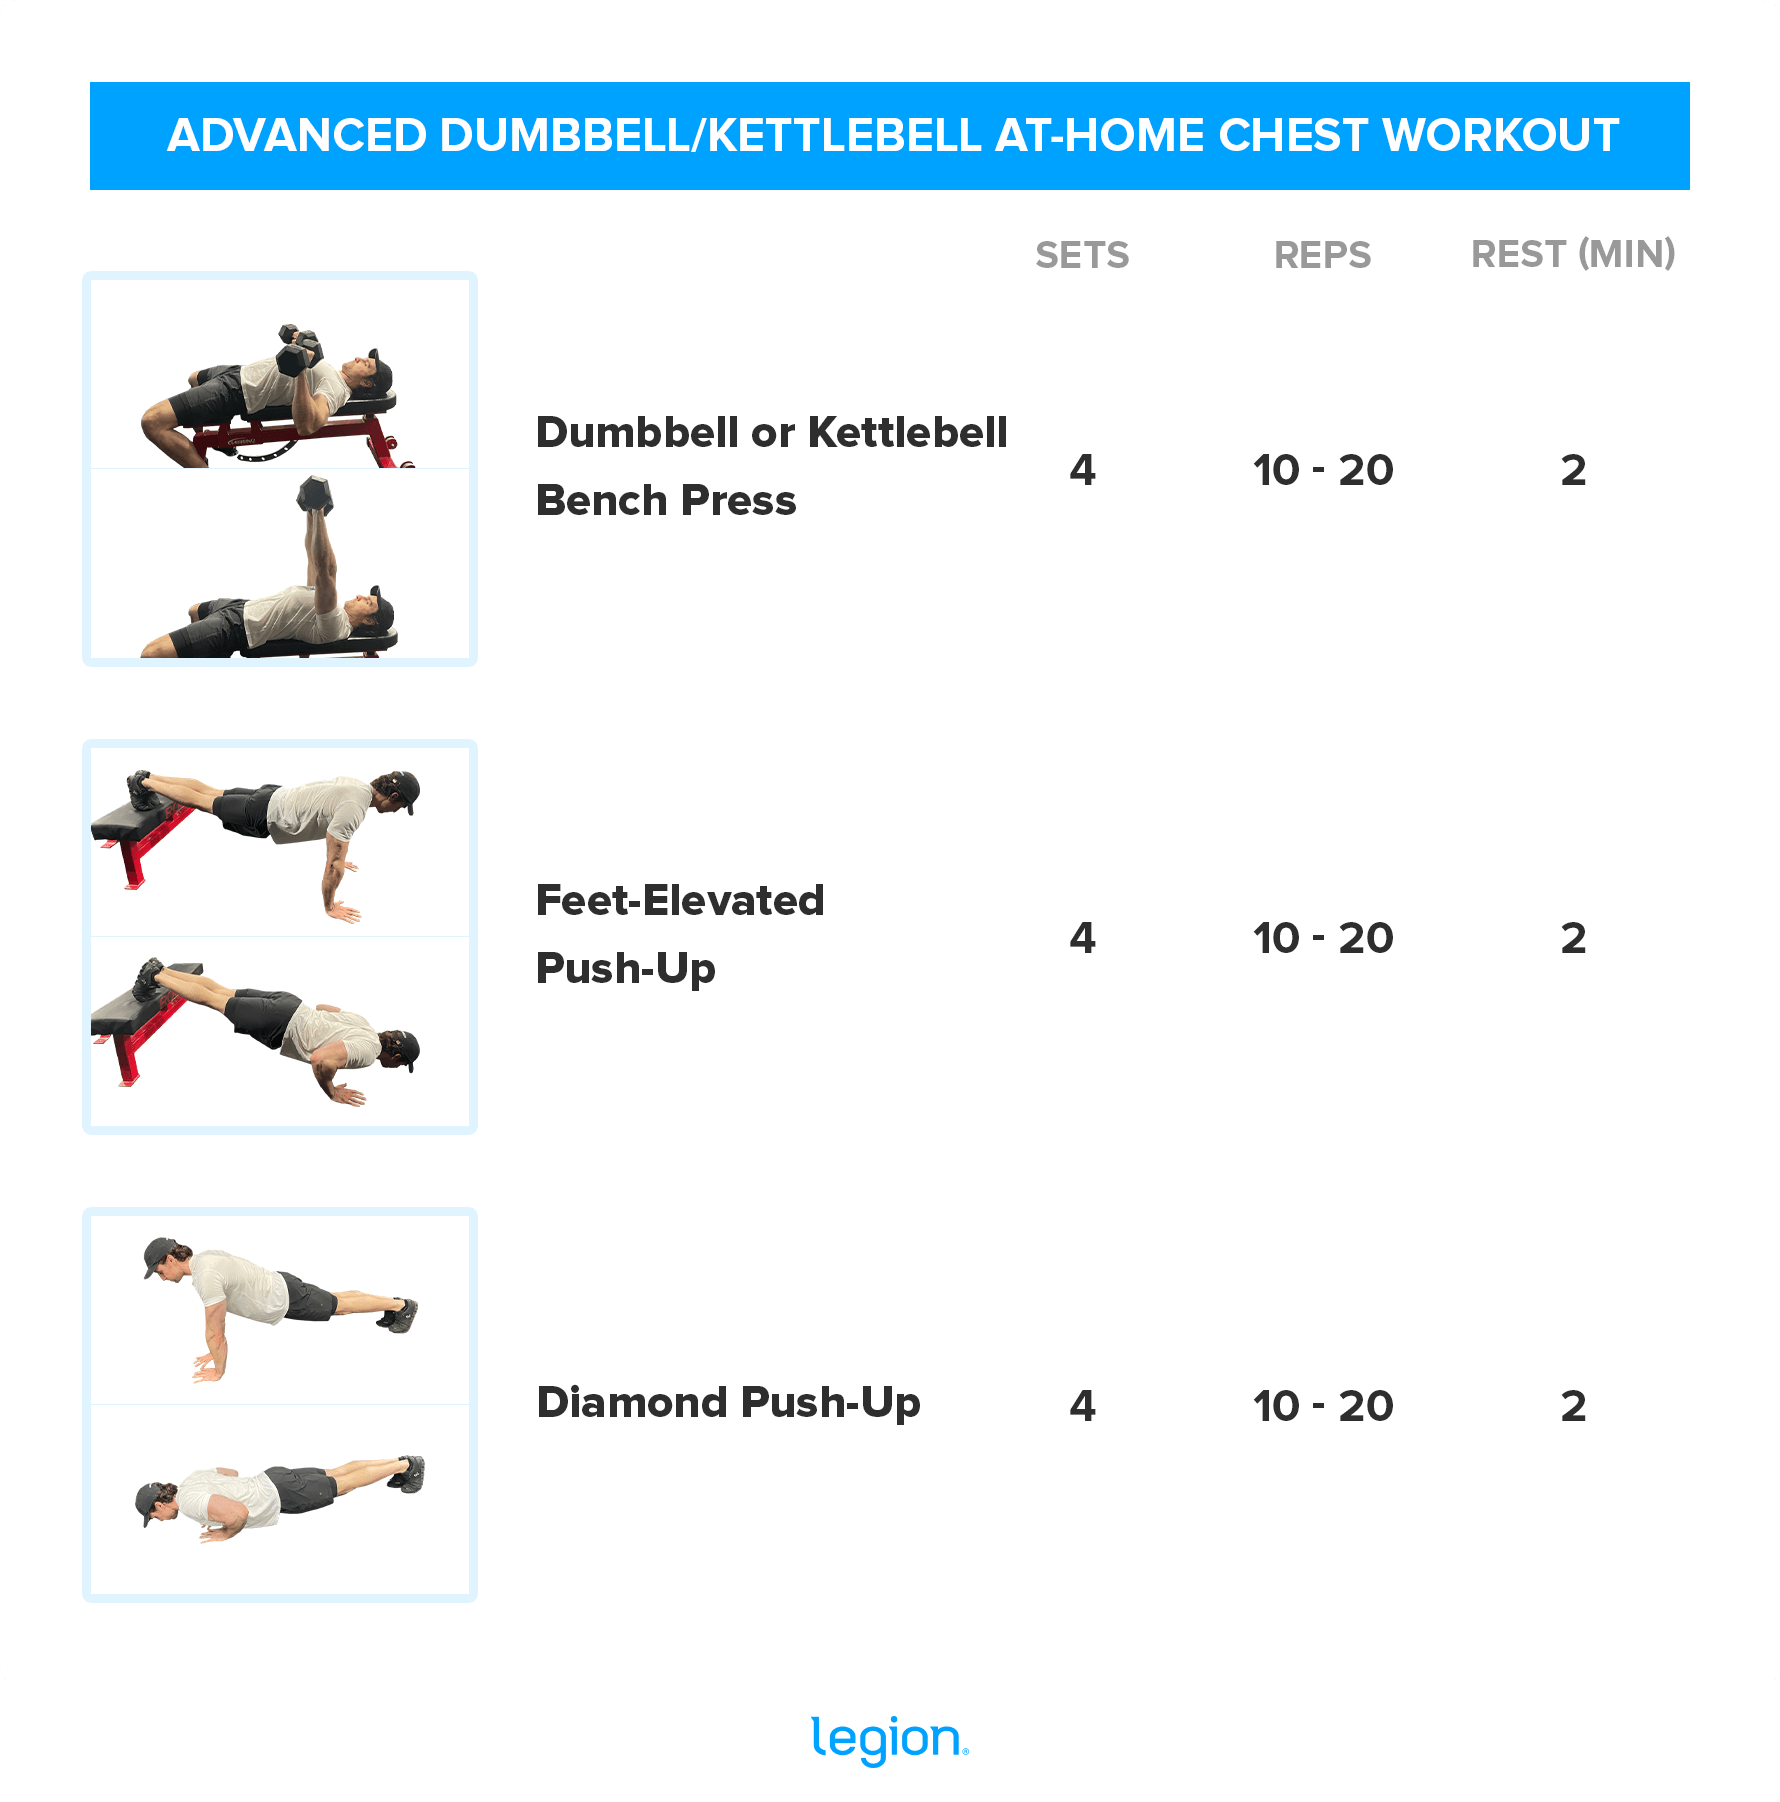 ADVANCED DUMBBELL/KETTLEBELL AT-HOME CHEST WORKOUT